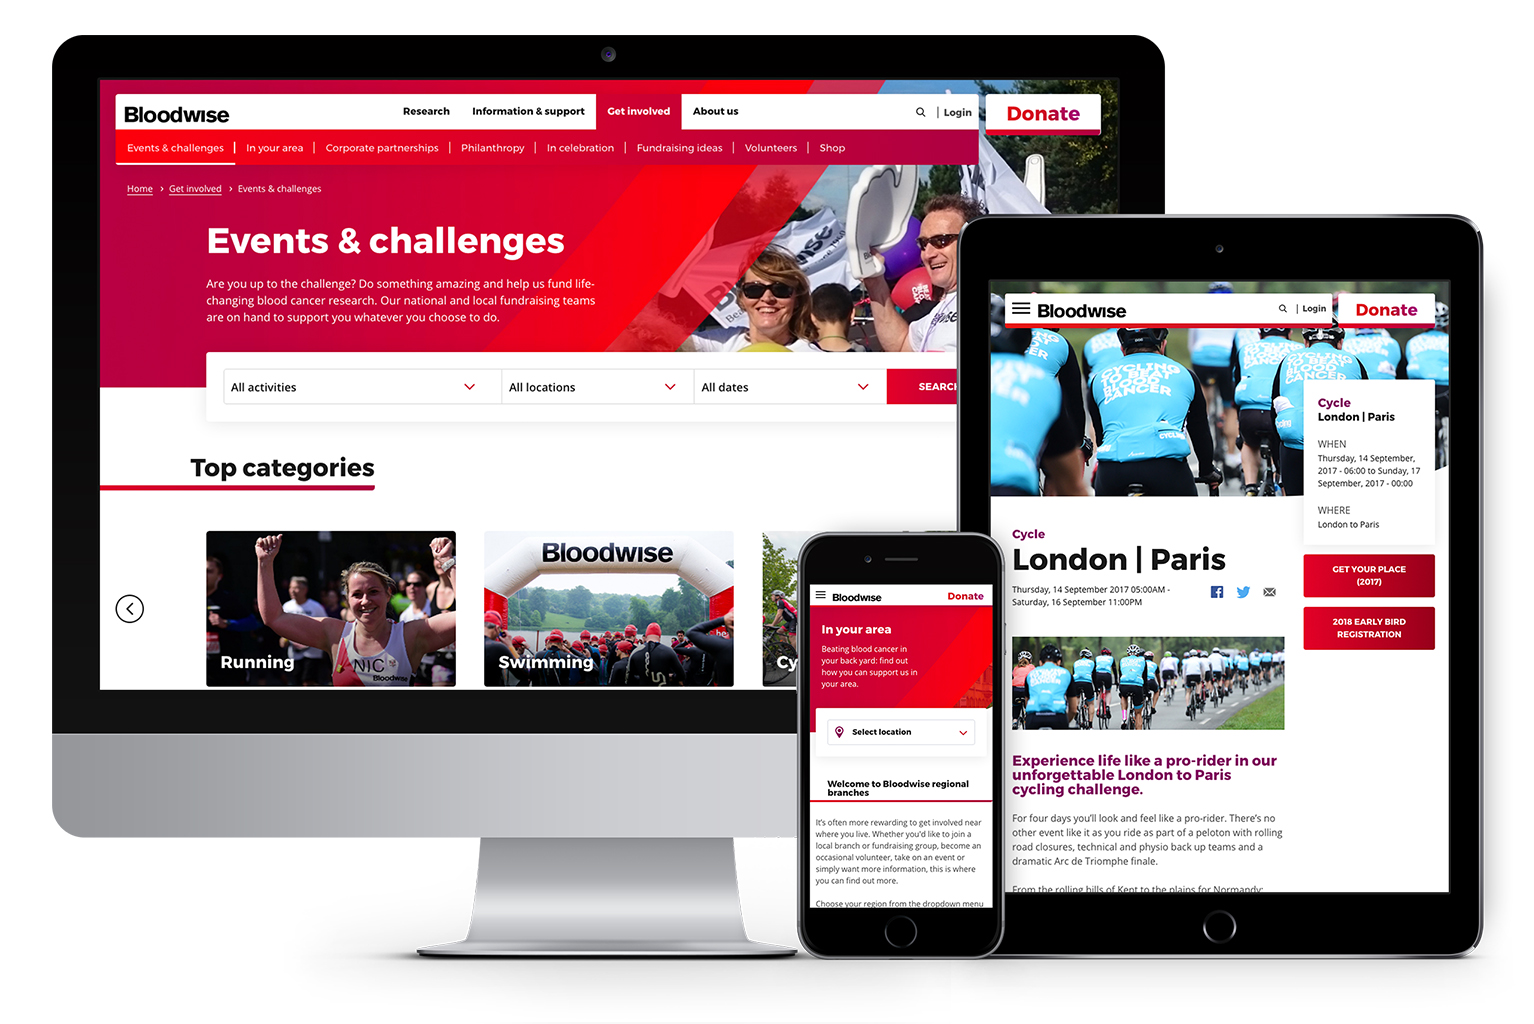 Get Involved with Bloodwise Events and Challenges